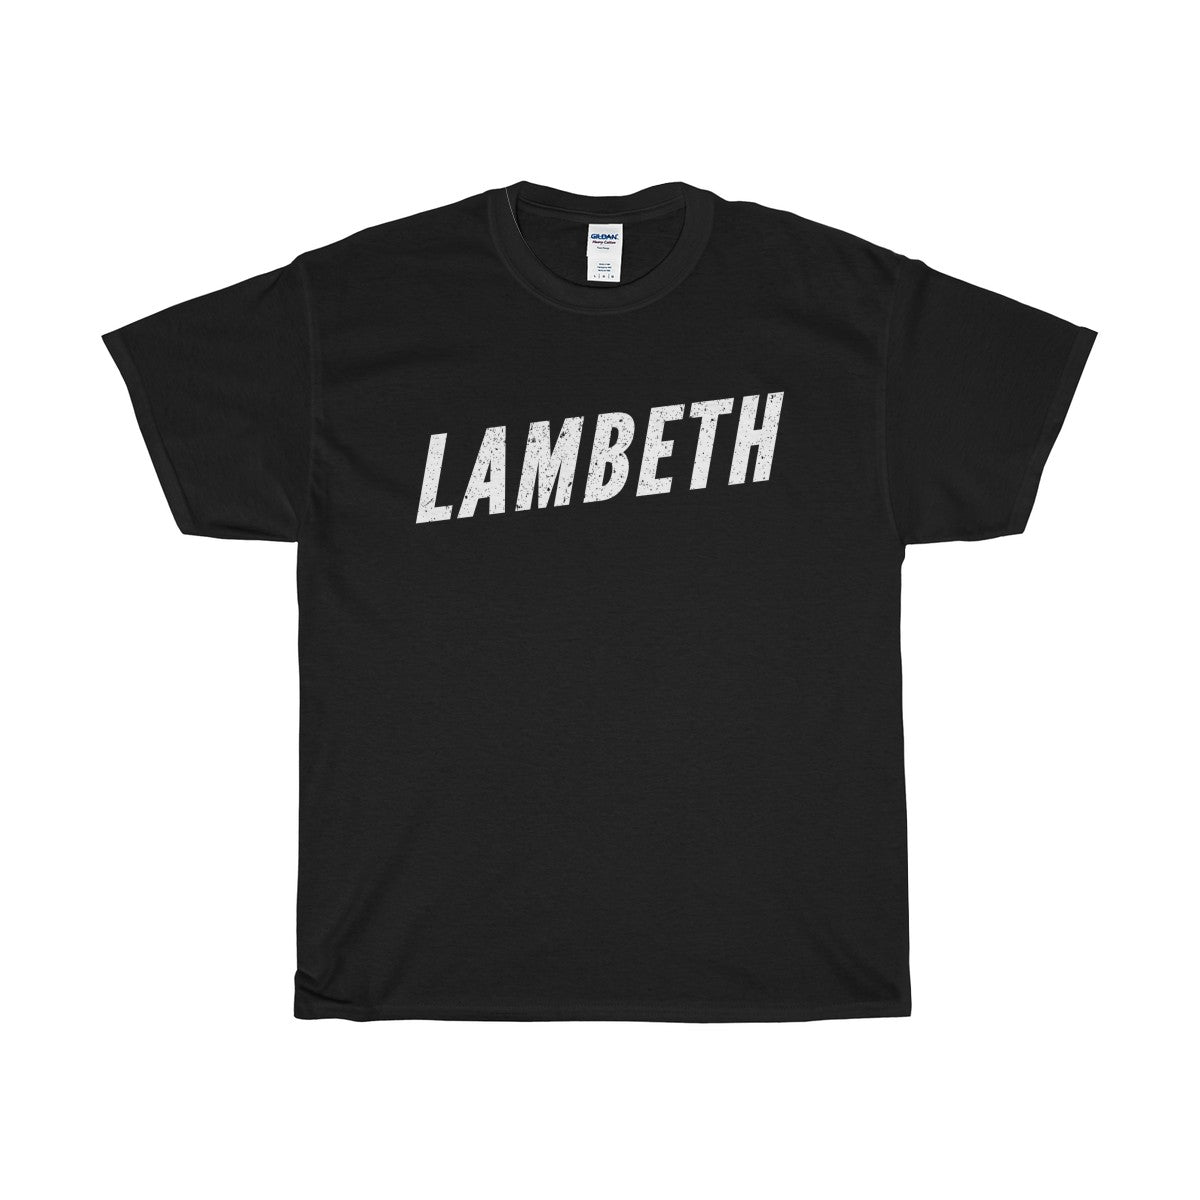 Lambeth T-Shirt